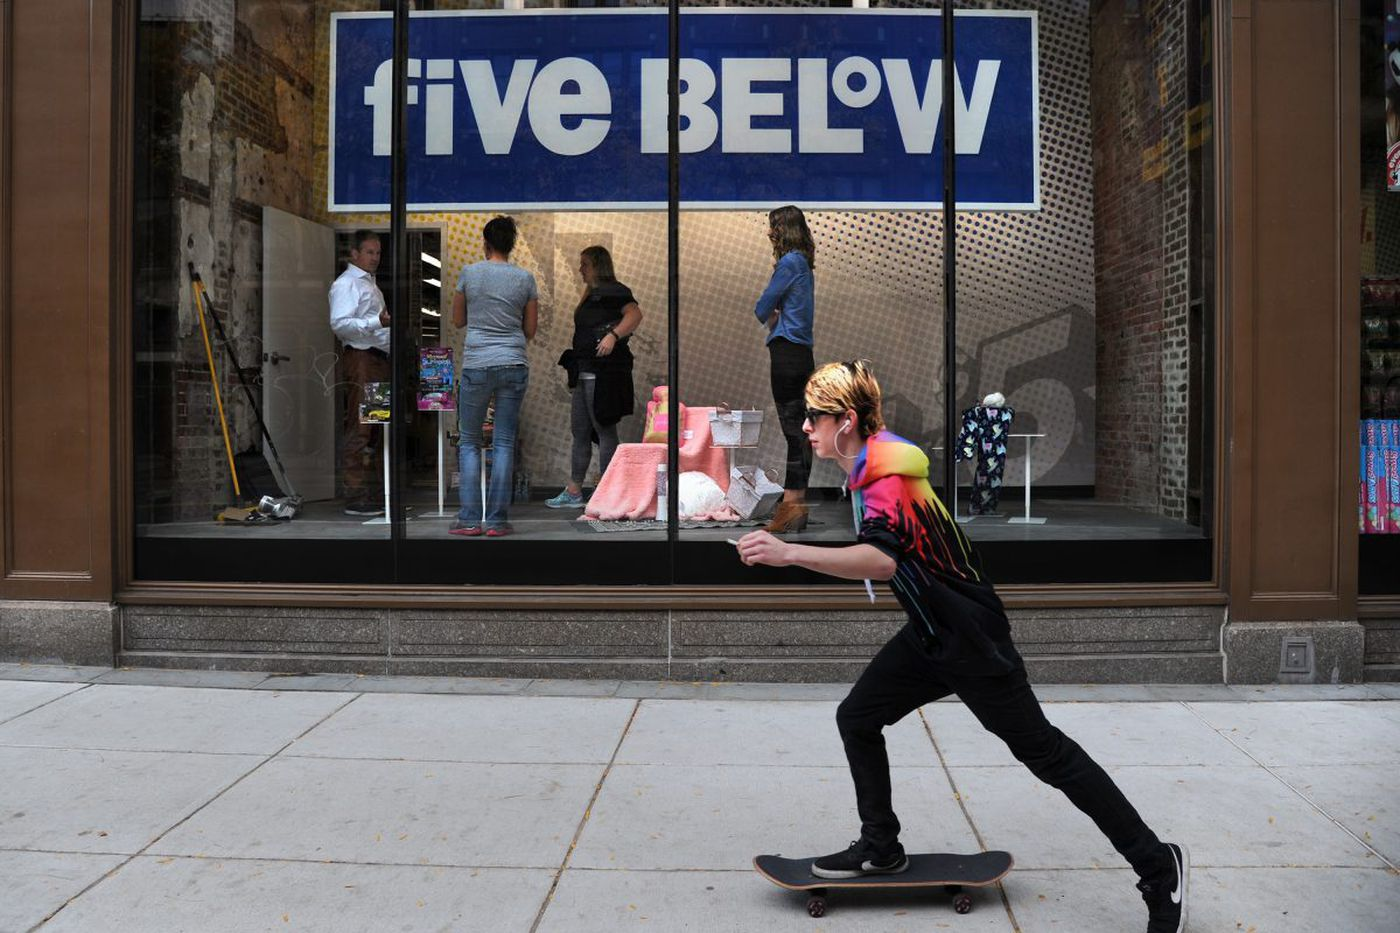 Five Below adds to its empire with new Market Street store